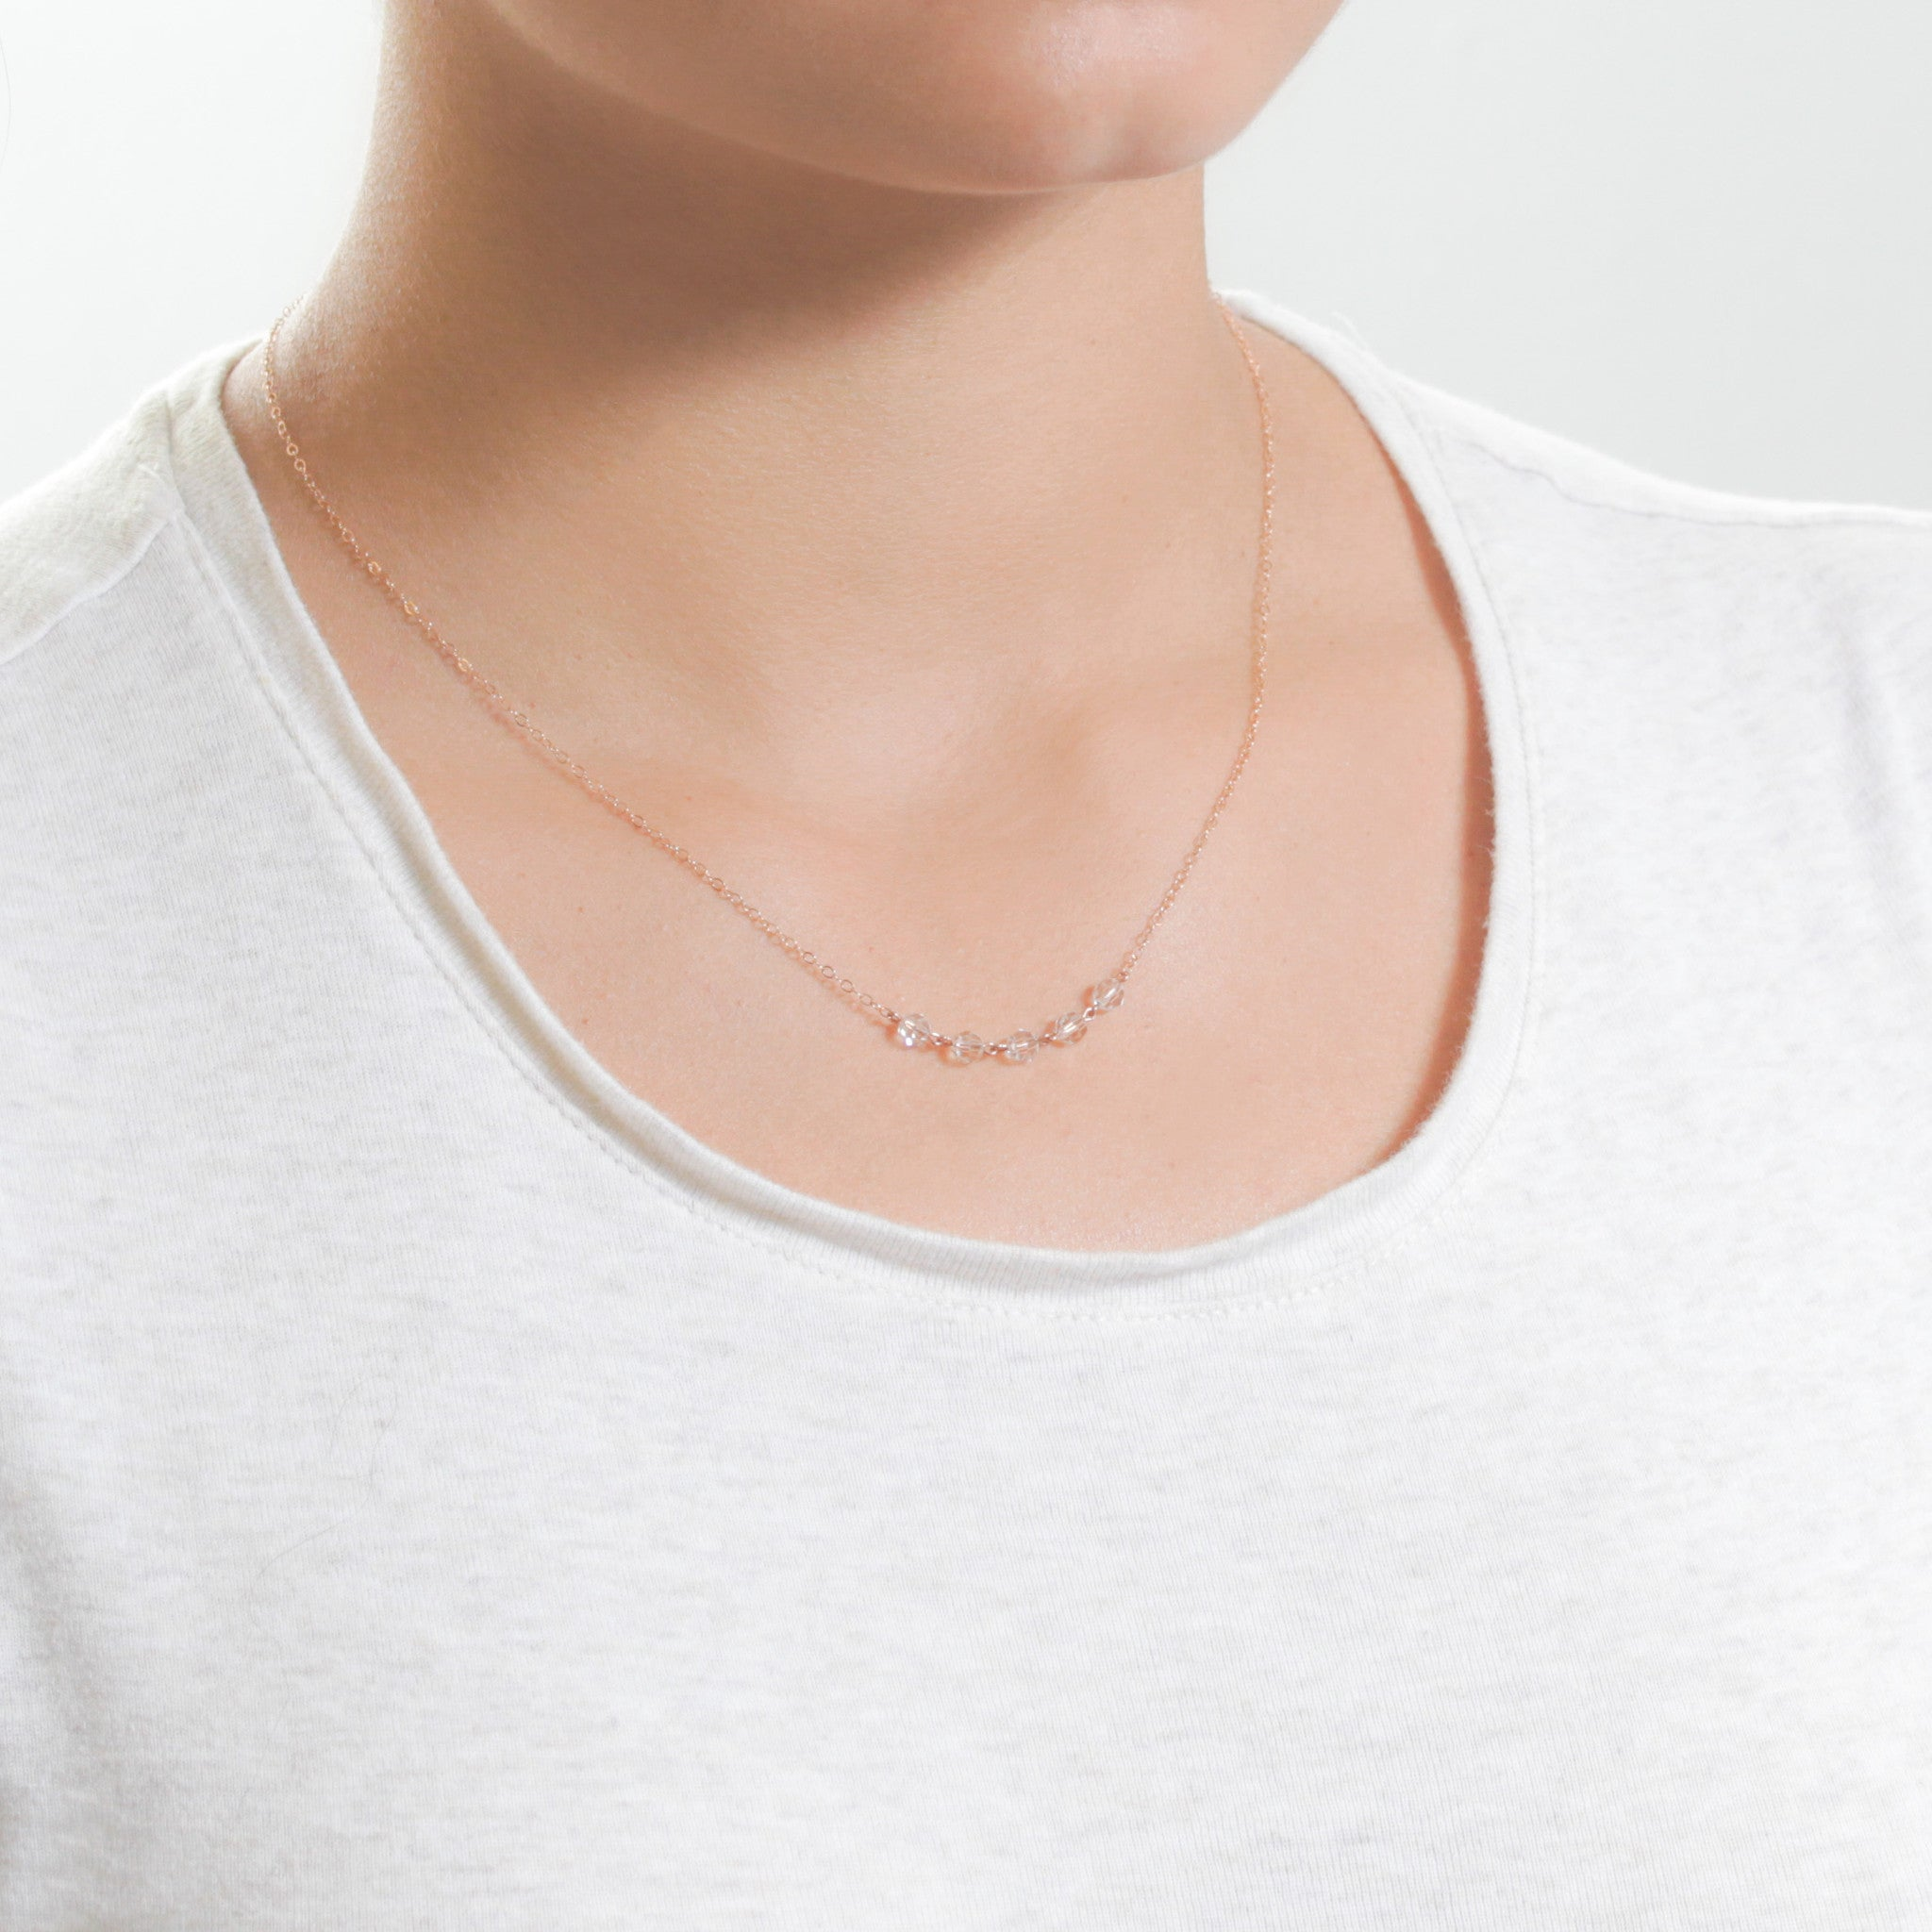 simple necklace silver gold sterling shop jewelry rose oneiro thin